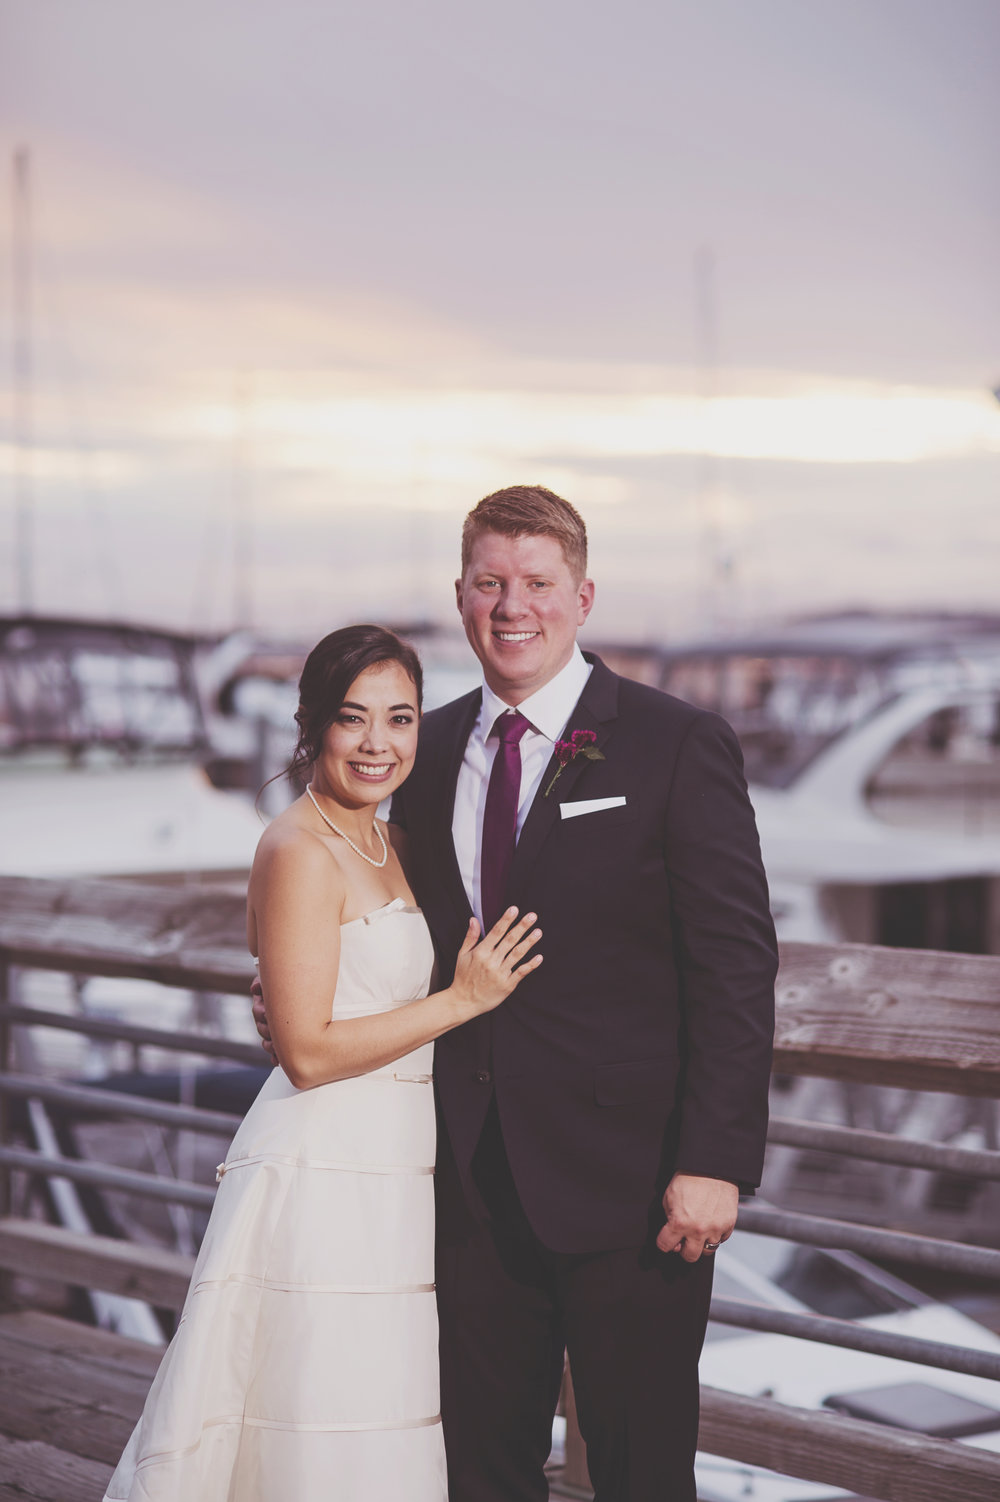 Edmunds Yacht Club Wedding_Montana Wedding Photographer_Missoula Wedding Photographer_Kelsey Lane Photography_marina wedding